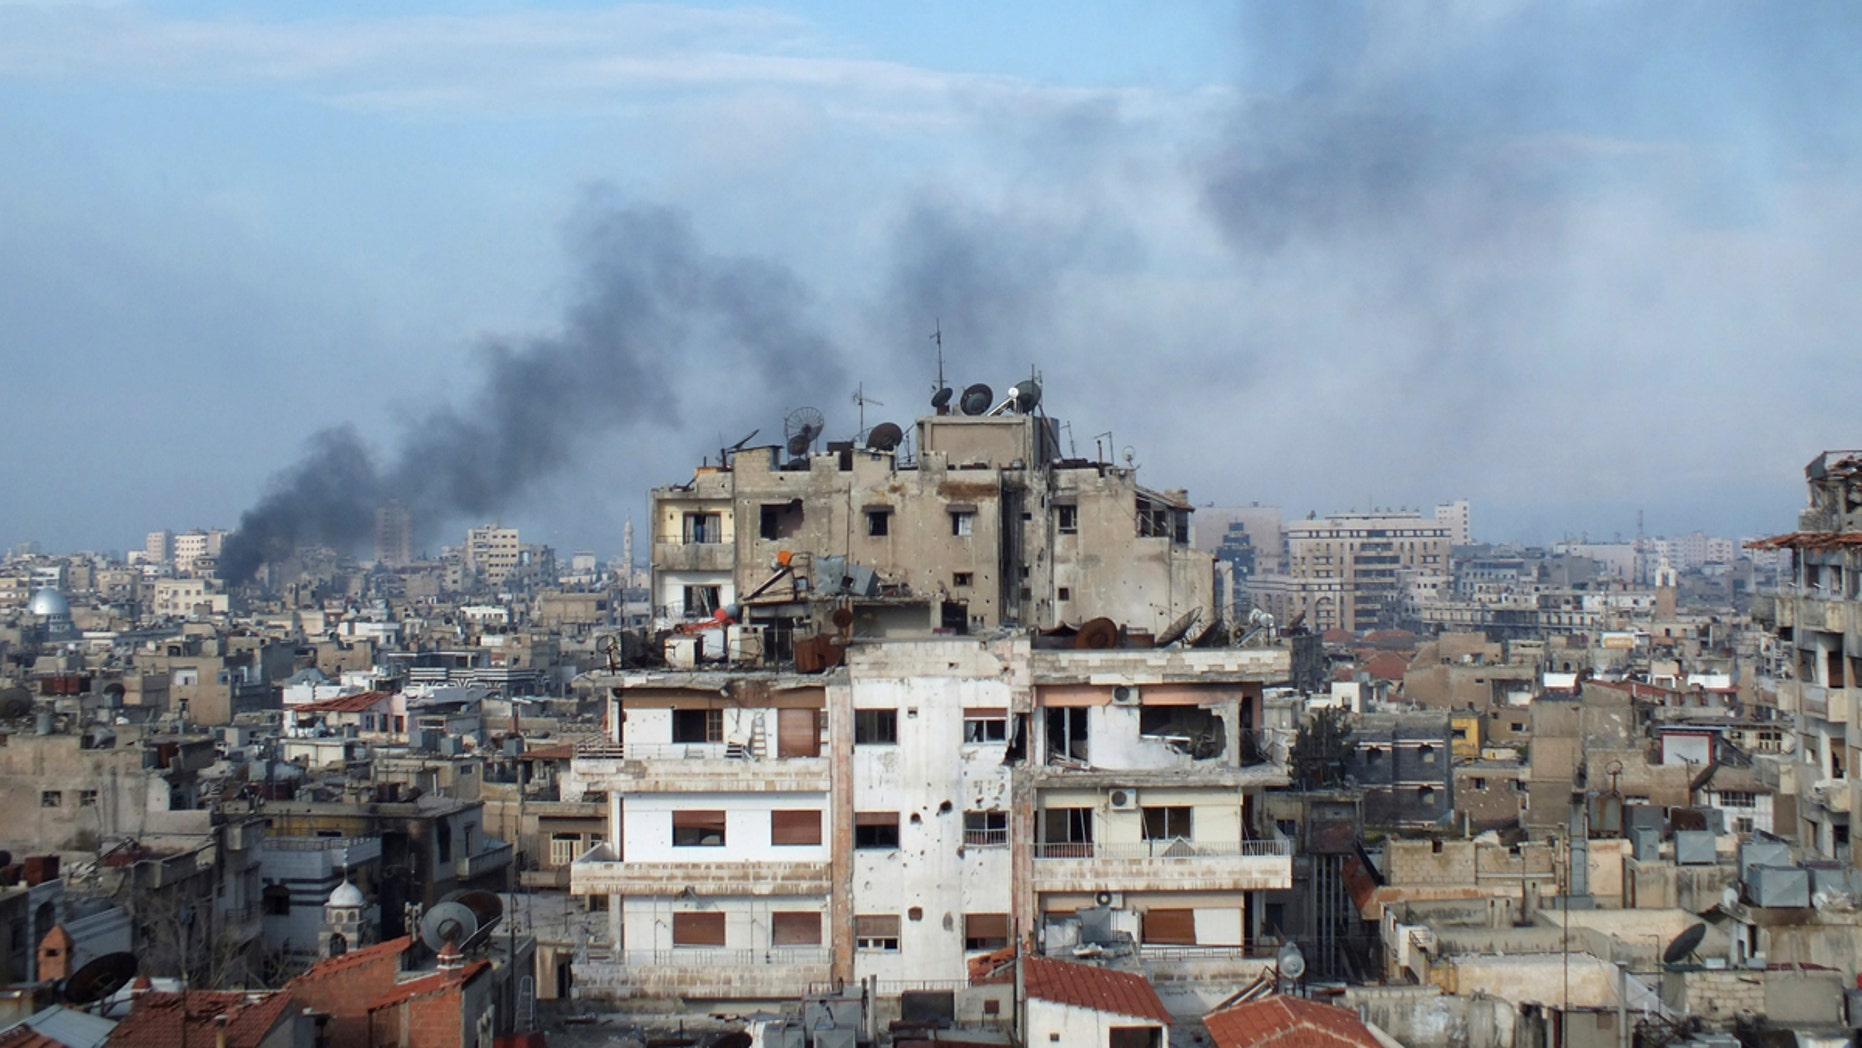 Smoke rises from a building in the city of Homs, Syria, in this file photo from March 2013.